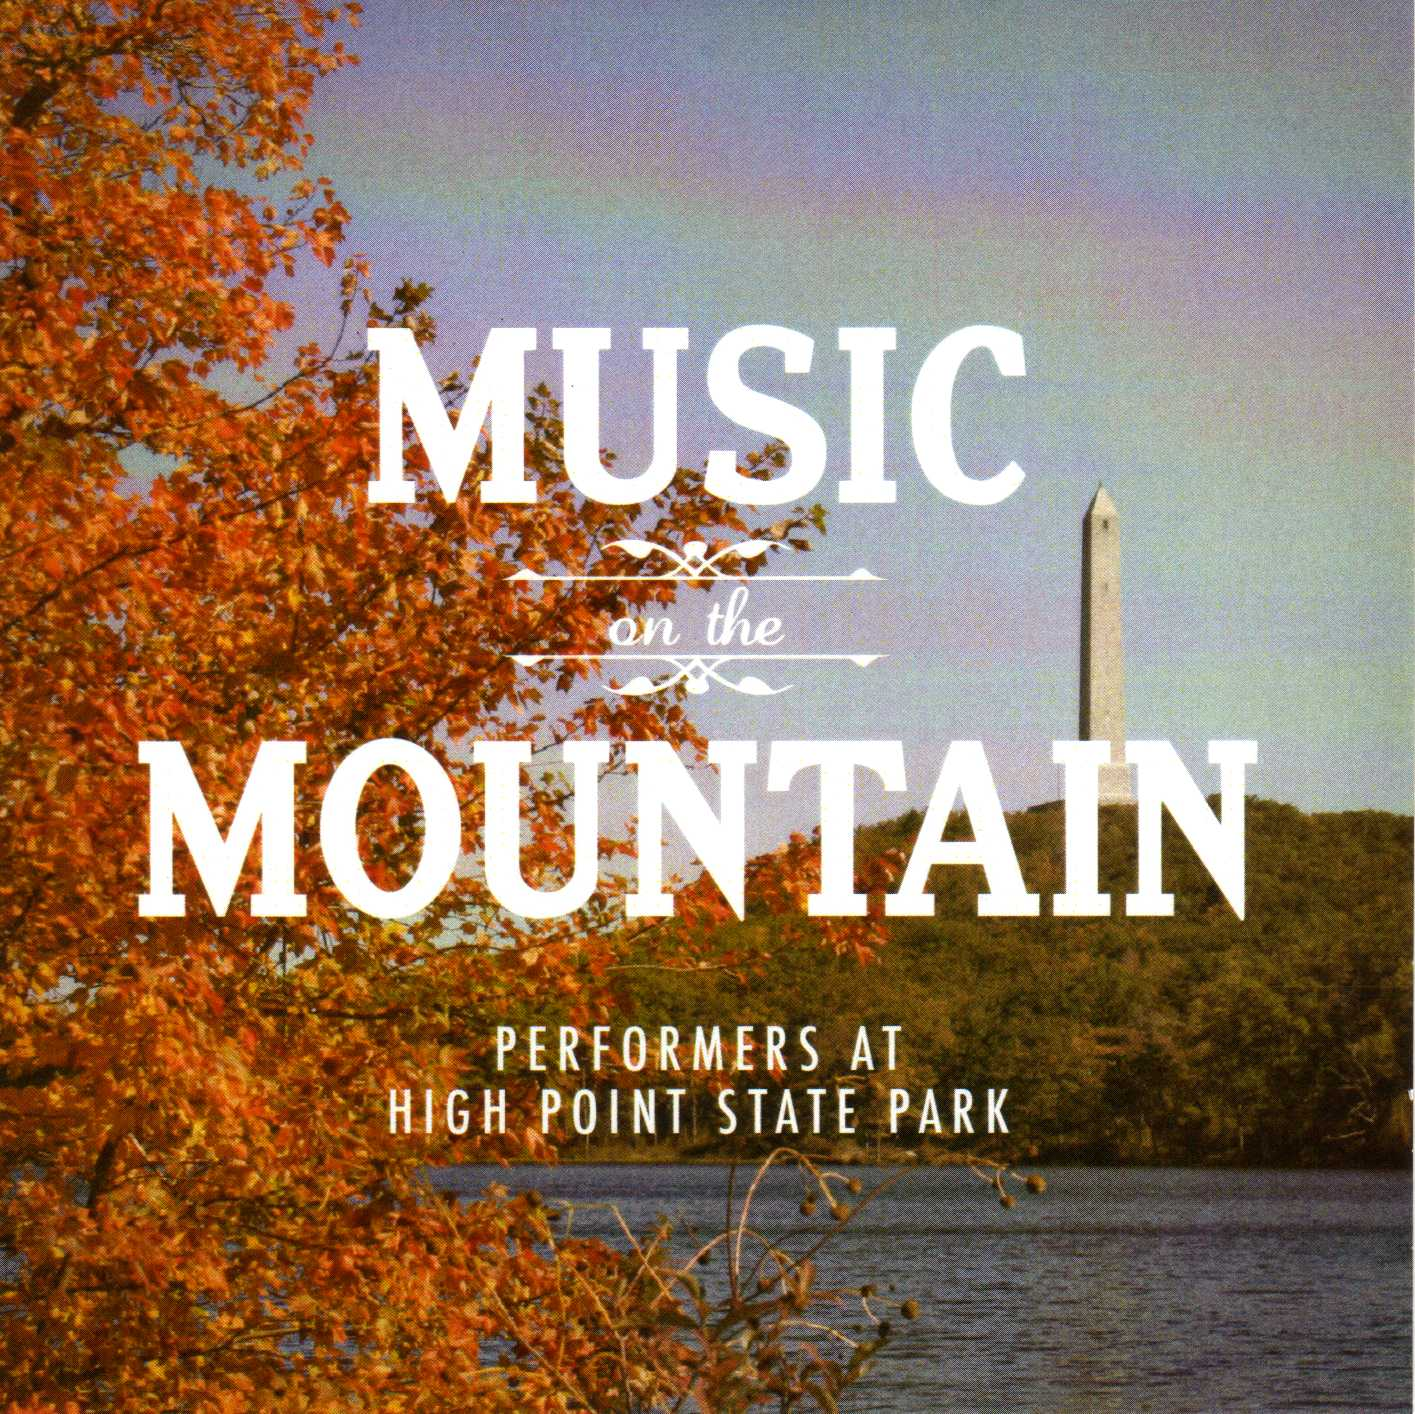 http://friendshighpointstatepark.blogspot.com/p/music-on-mountain-cd.html